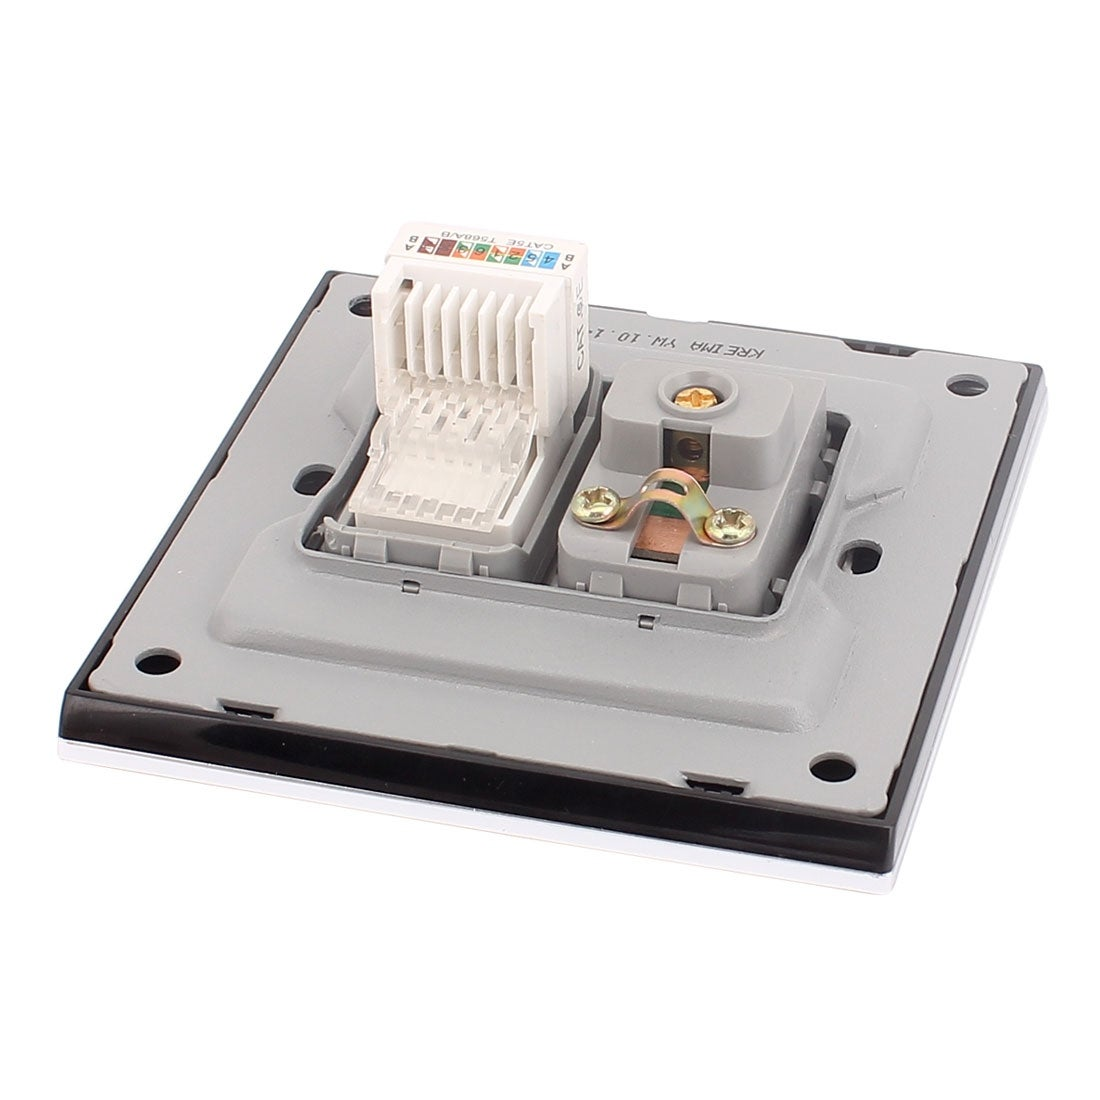 TV Aerial Female Socket RJ45 8P8C Network Wall Outlet Connect Panel Plate  Black